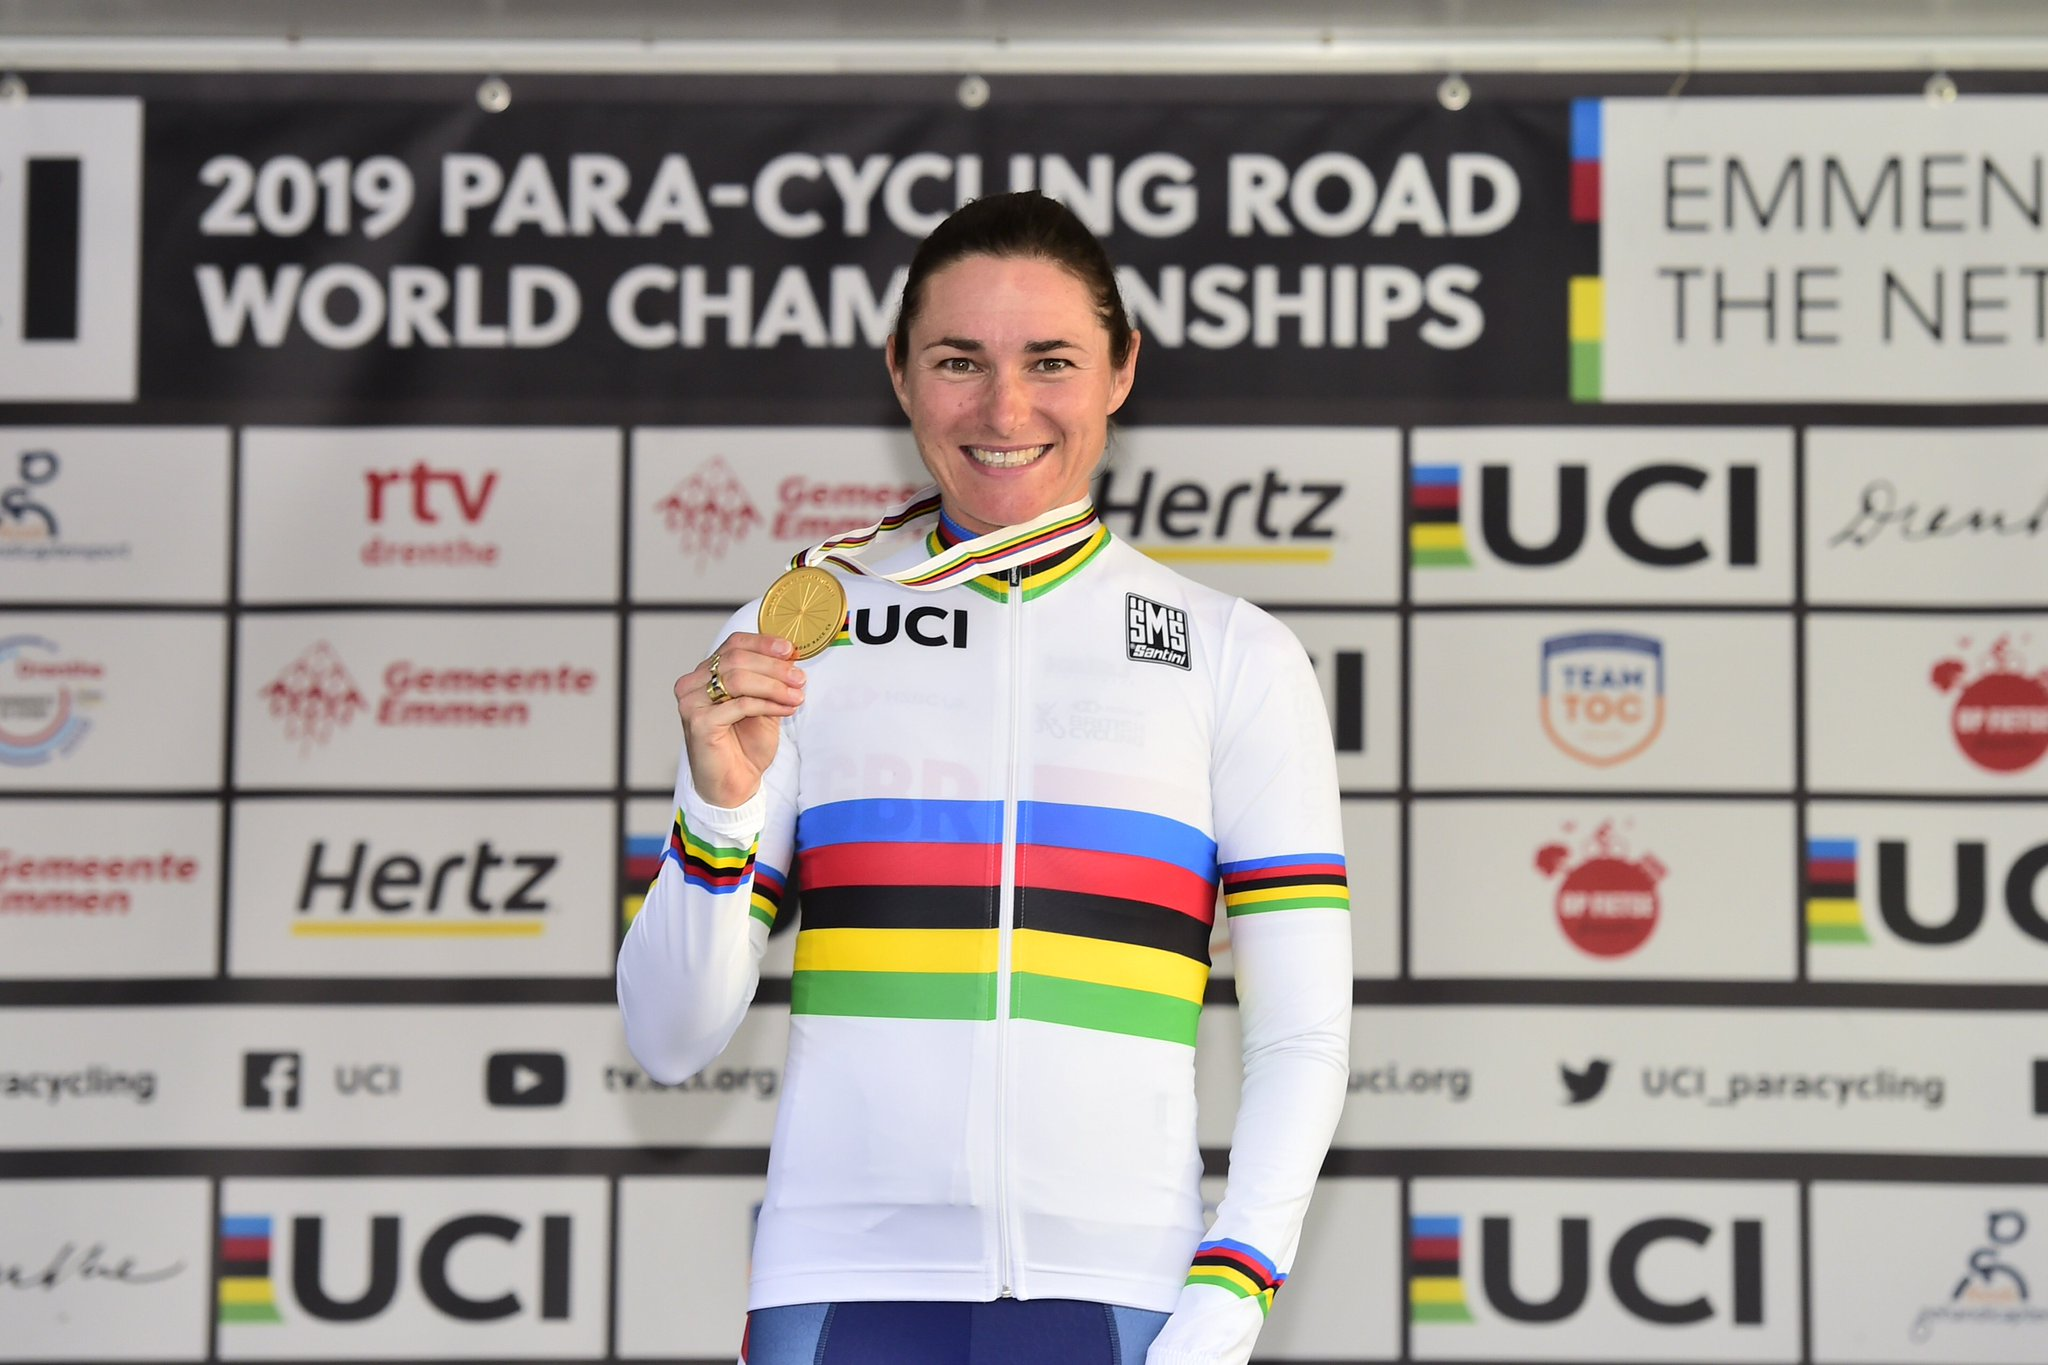 ❤️ IT'S STOREY TIME ❤️  @DameSarahStorey seals a 14th @UCI_paracycling World Championship gold in style 🔙🔛🔝  That's her seventh road race-time trial double - what an athlete 🙌 #Emmen2019 https://t.co/C82Ot4TAQJ